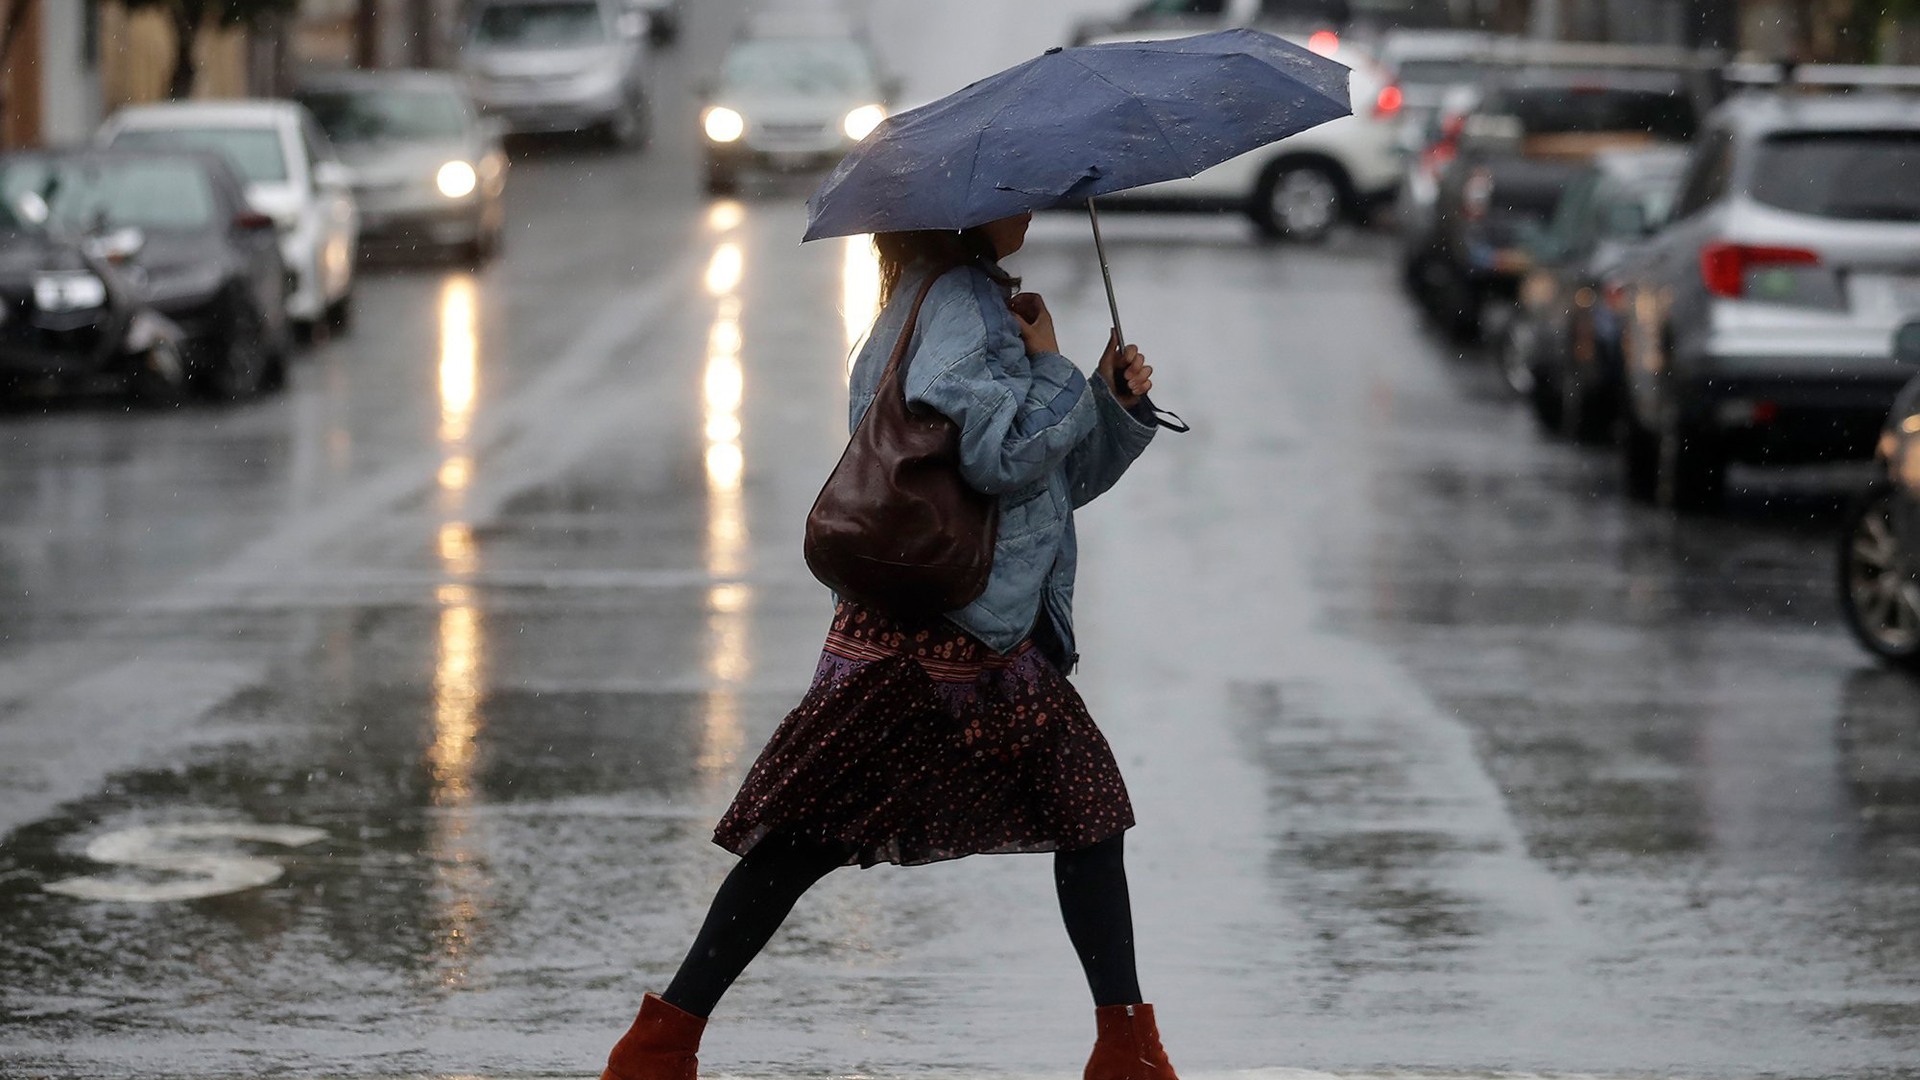 A woman walking in the rain in San Francisco. (Credit: Jeff Chiu/AP)